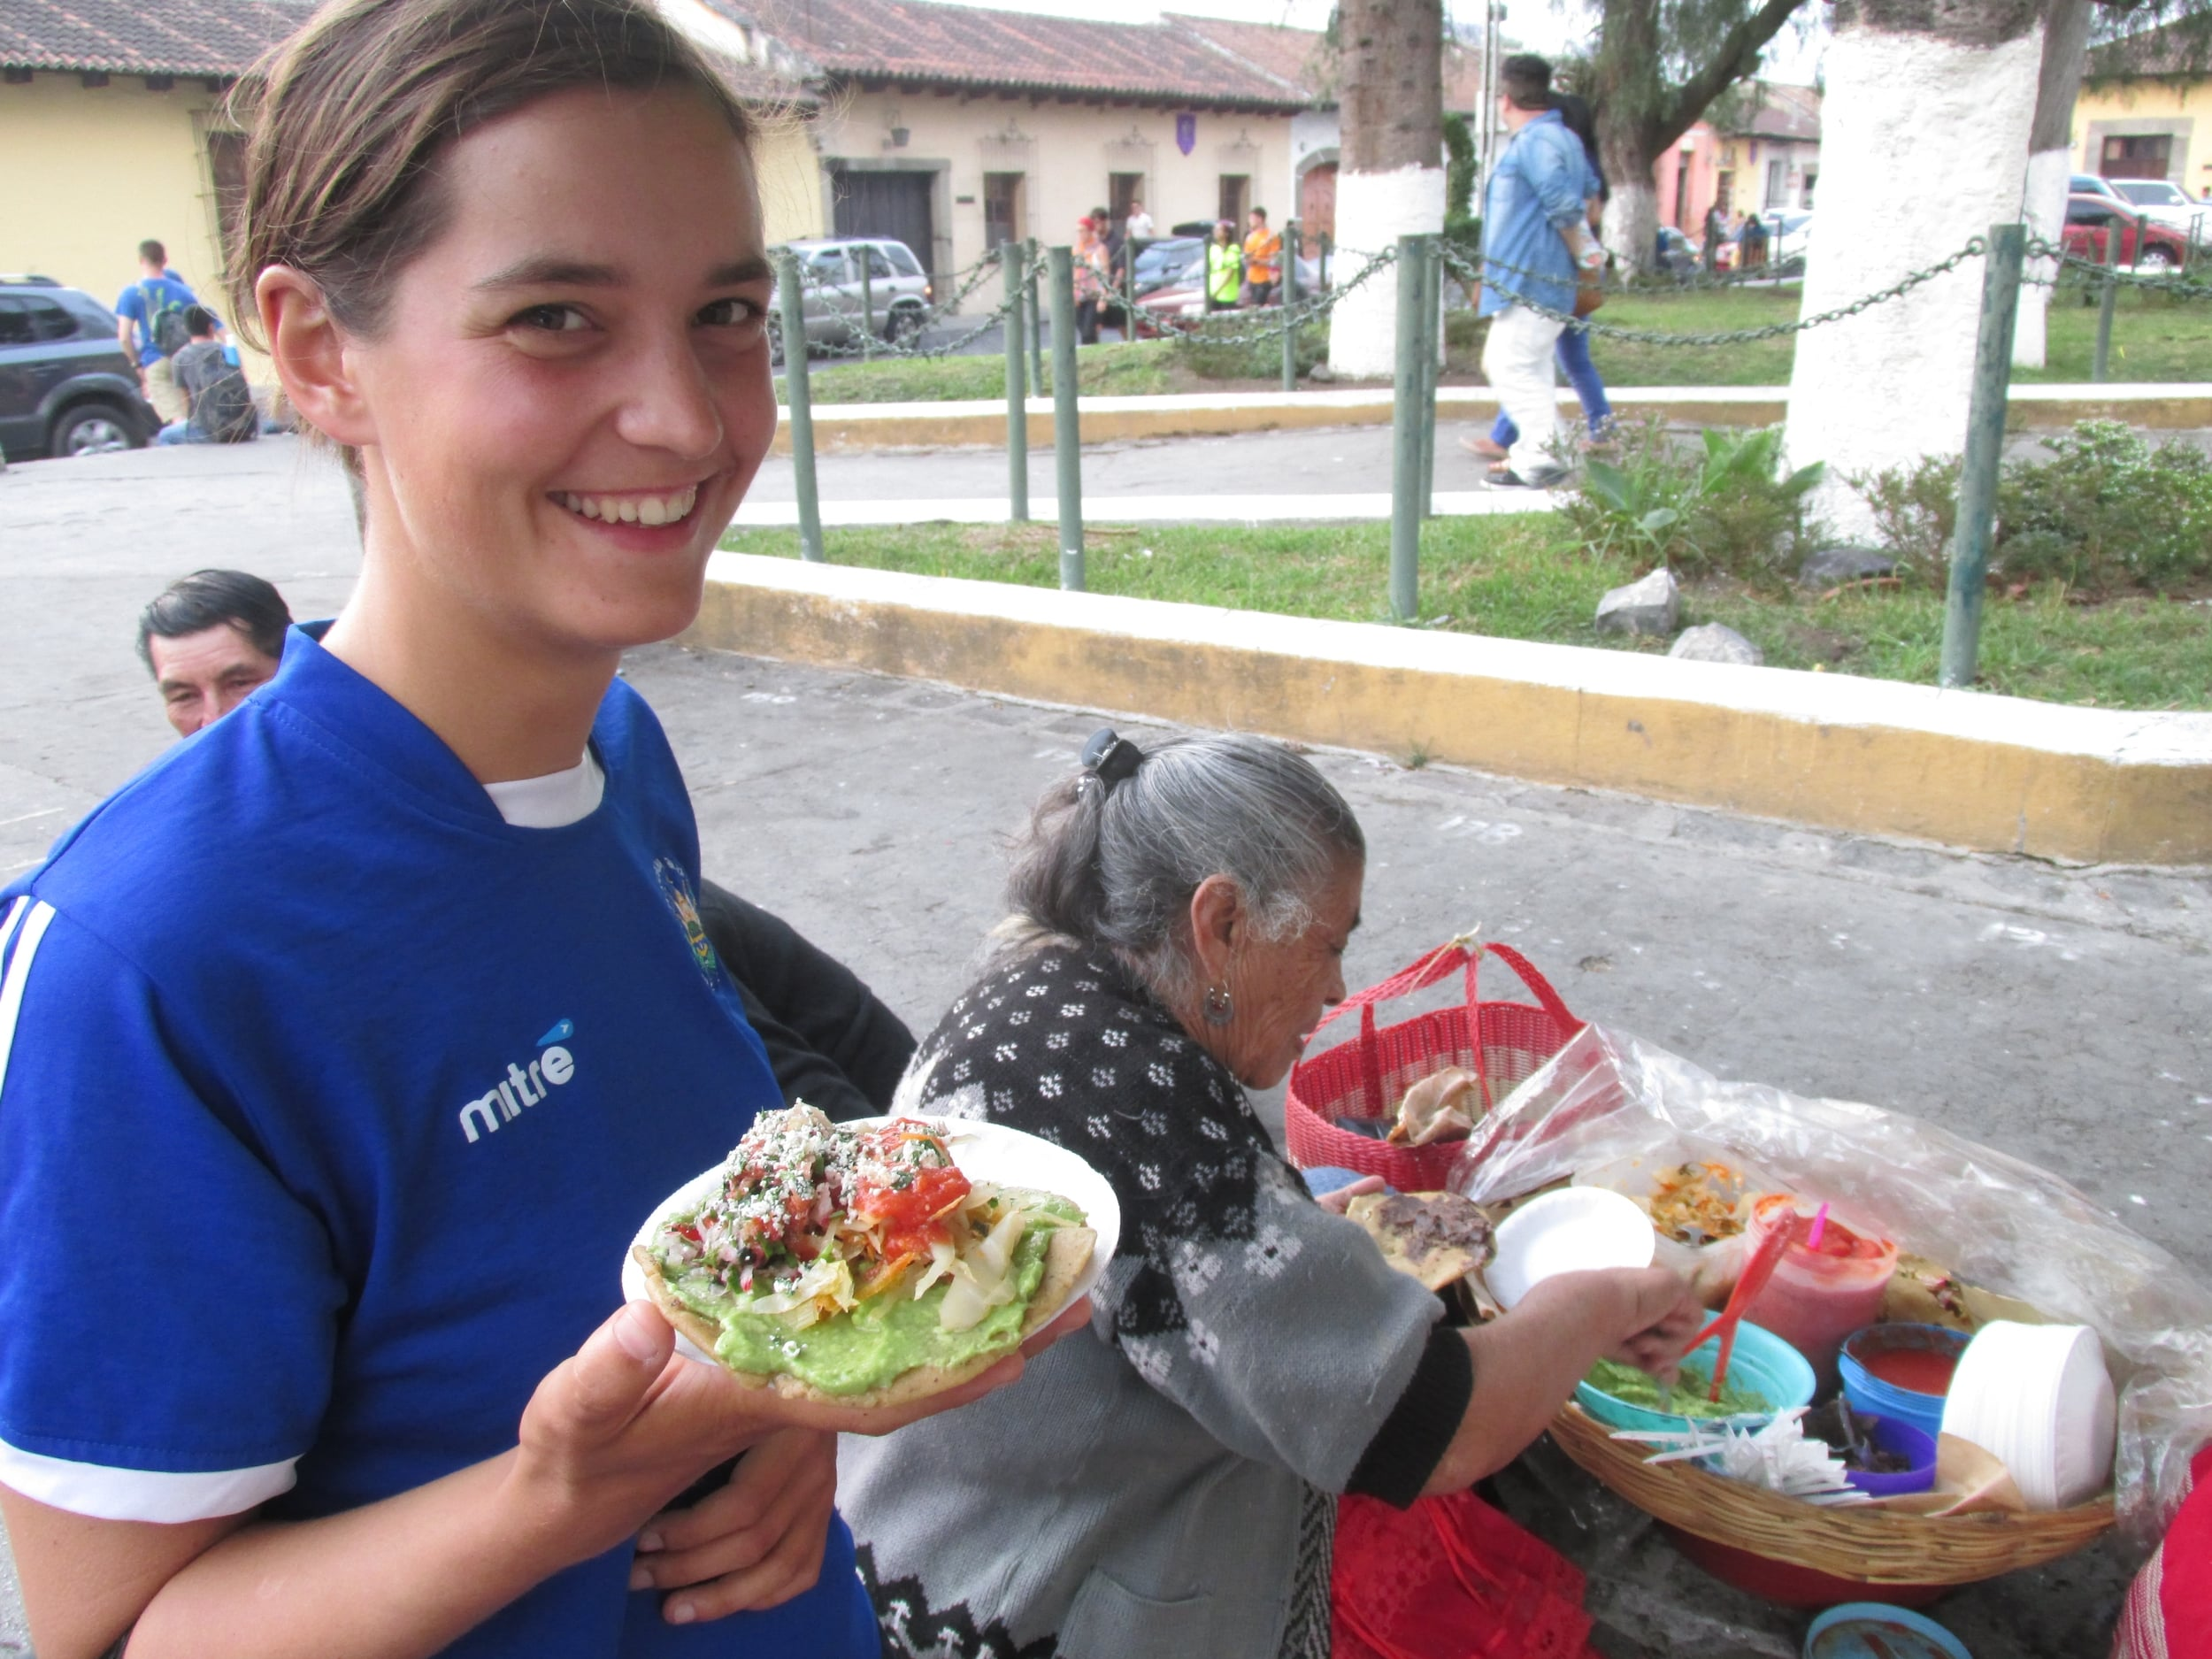 Nia eating a fried tortilla topped with BEANS and guacamole.